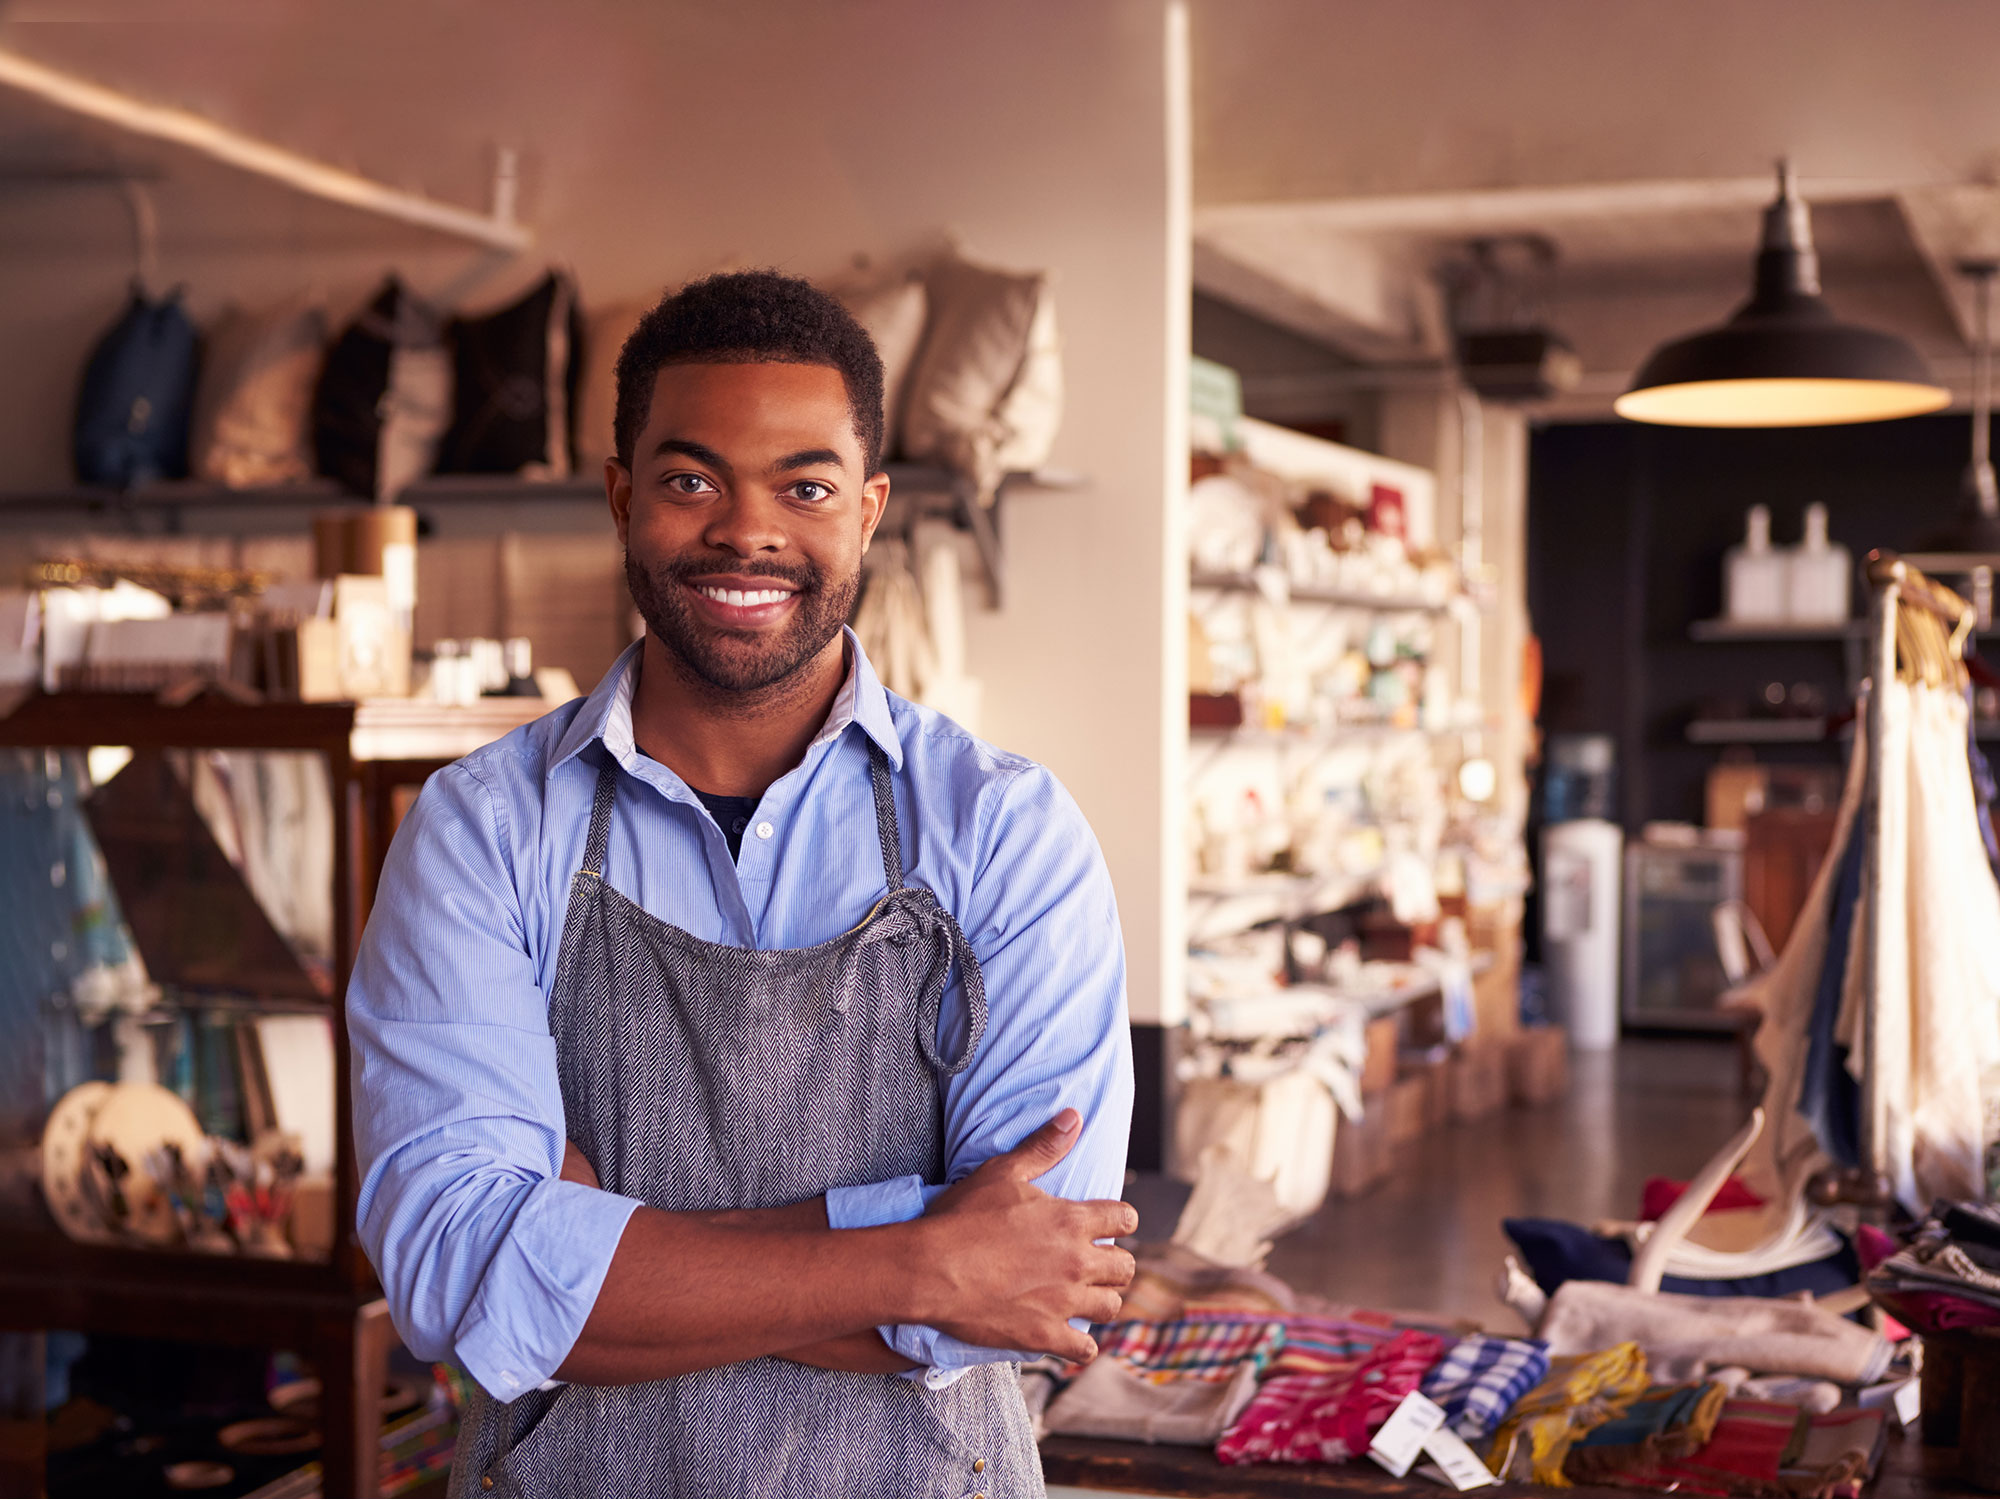 An African American man wearing an apron and blue shirt smiles; customer experience solutions